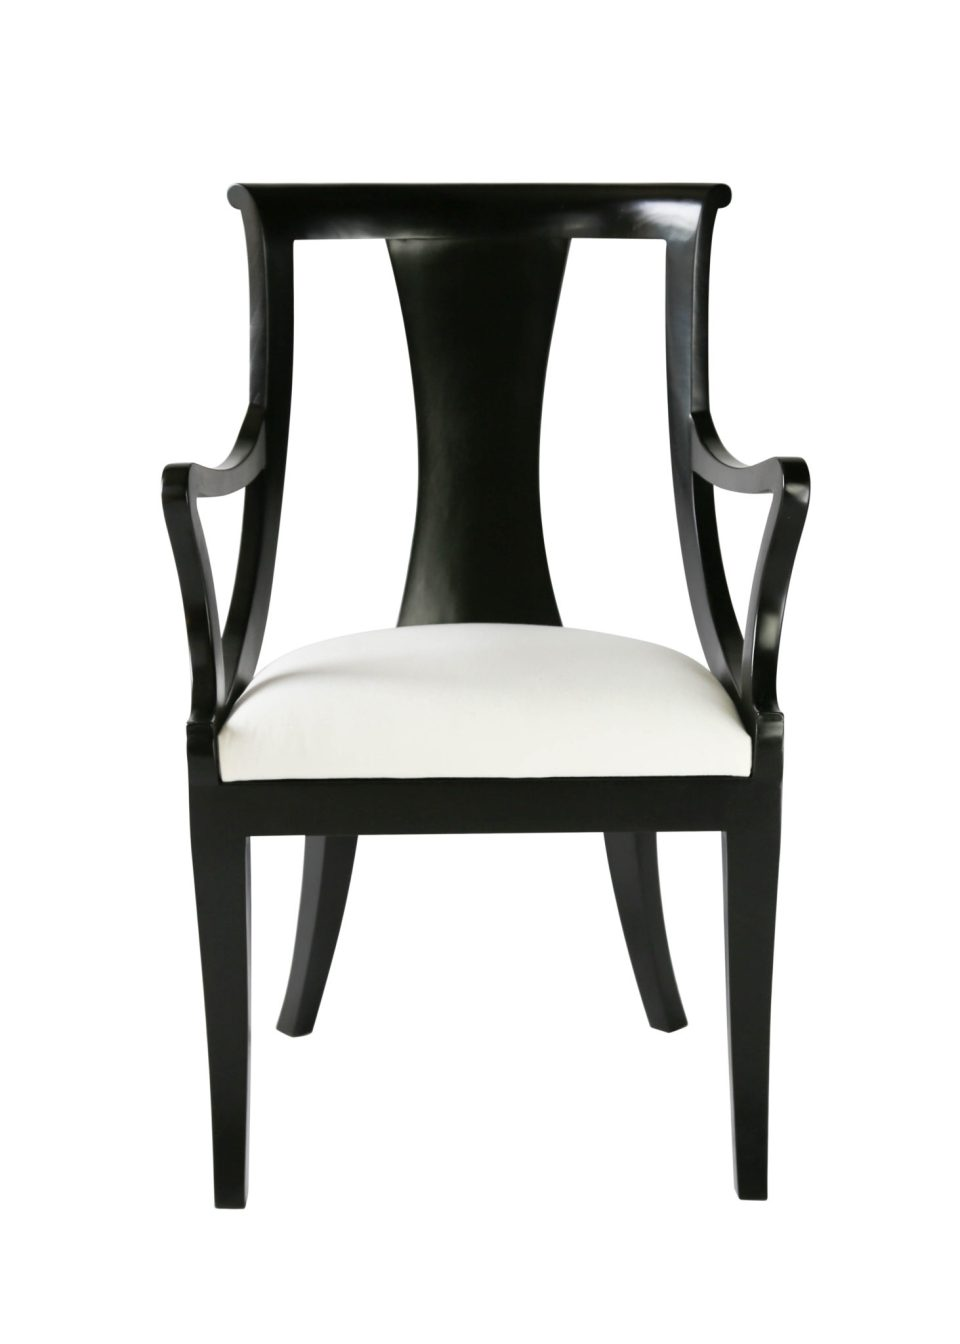 Carlyle Dining Chair Arms Front View copy